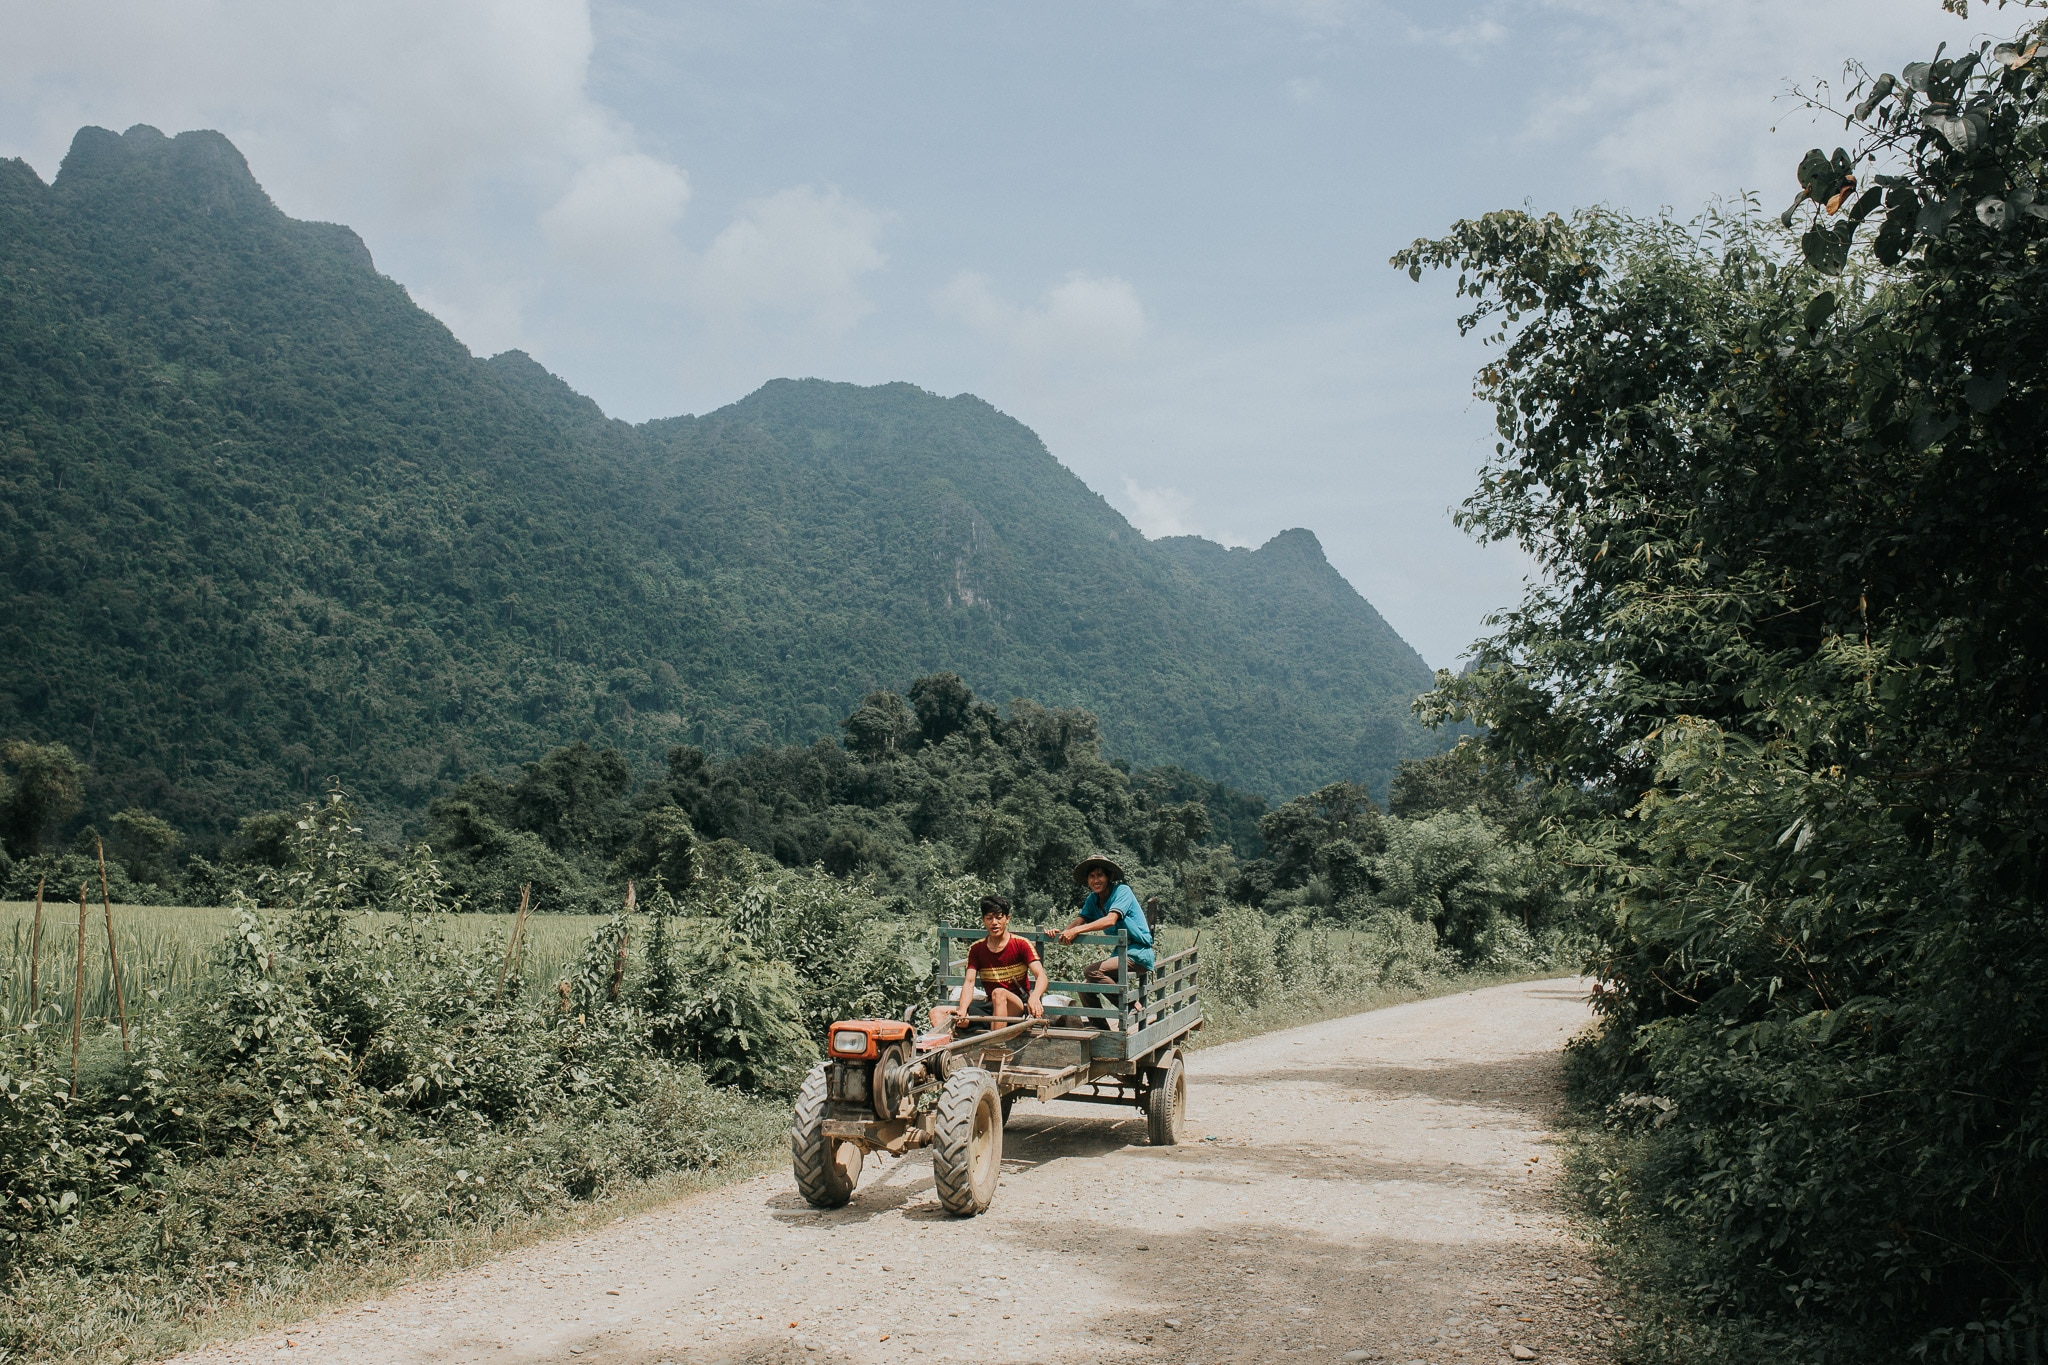 On week in Laos - Vang Vieng - Around town